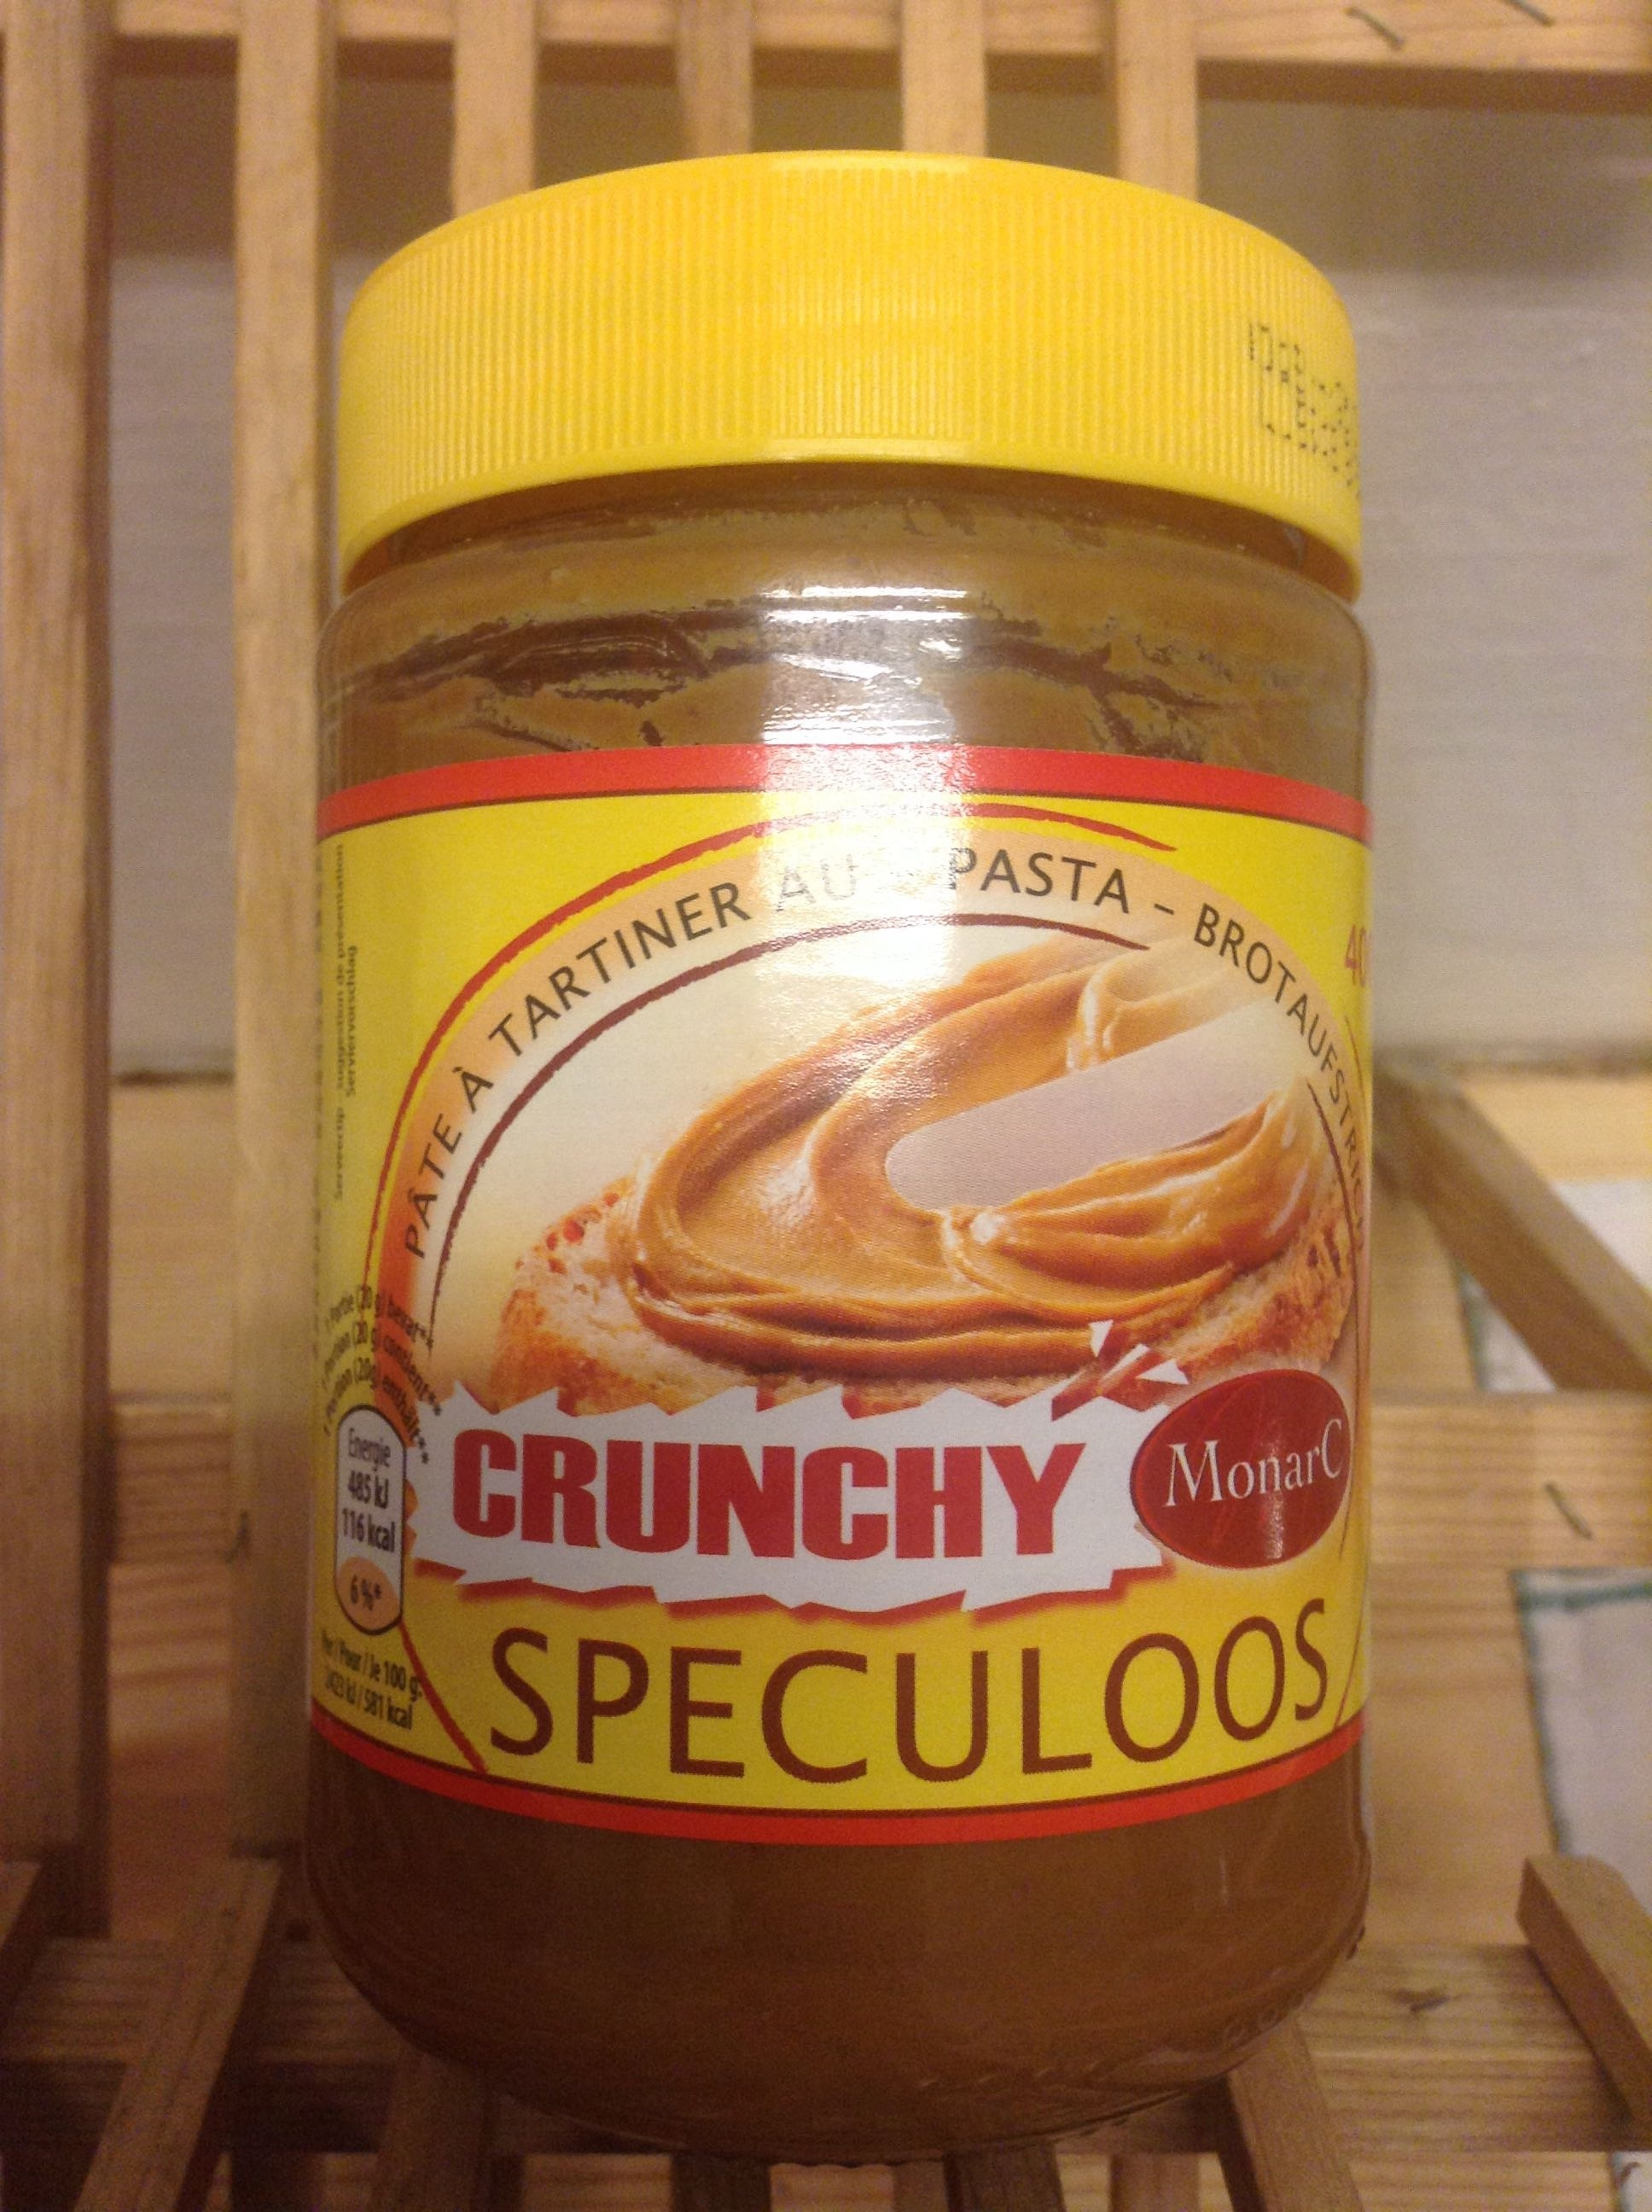 Crunchy speculoos - Product